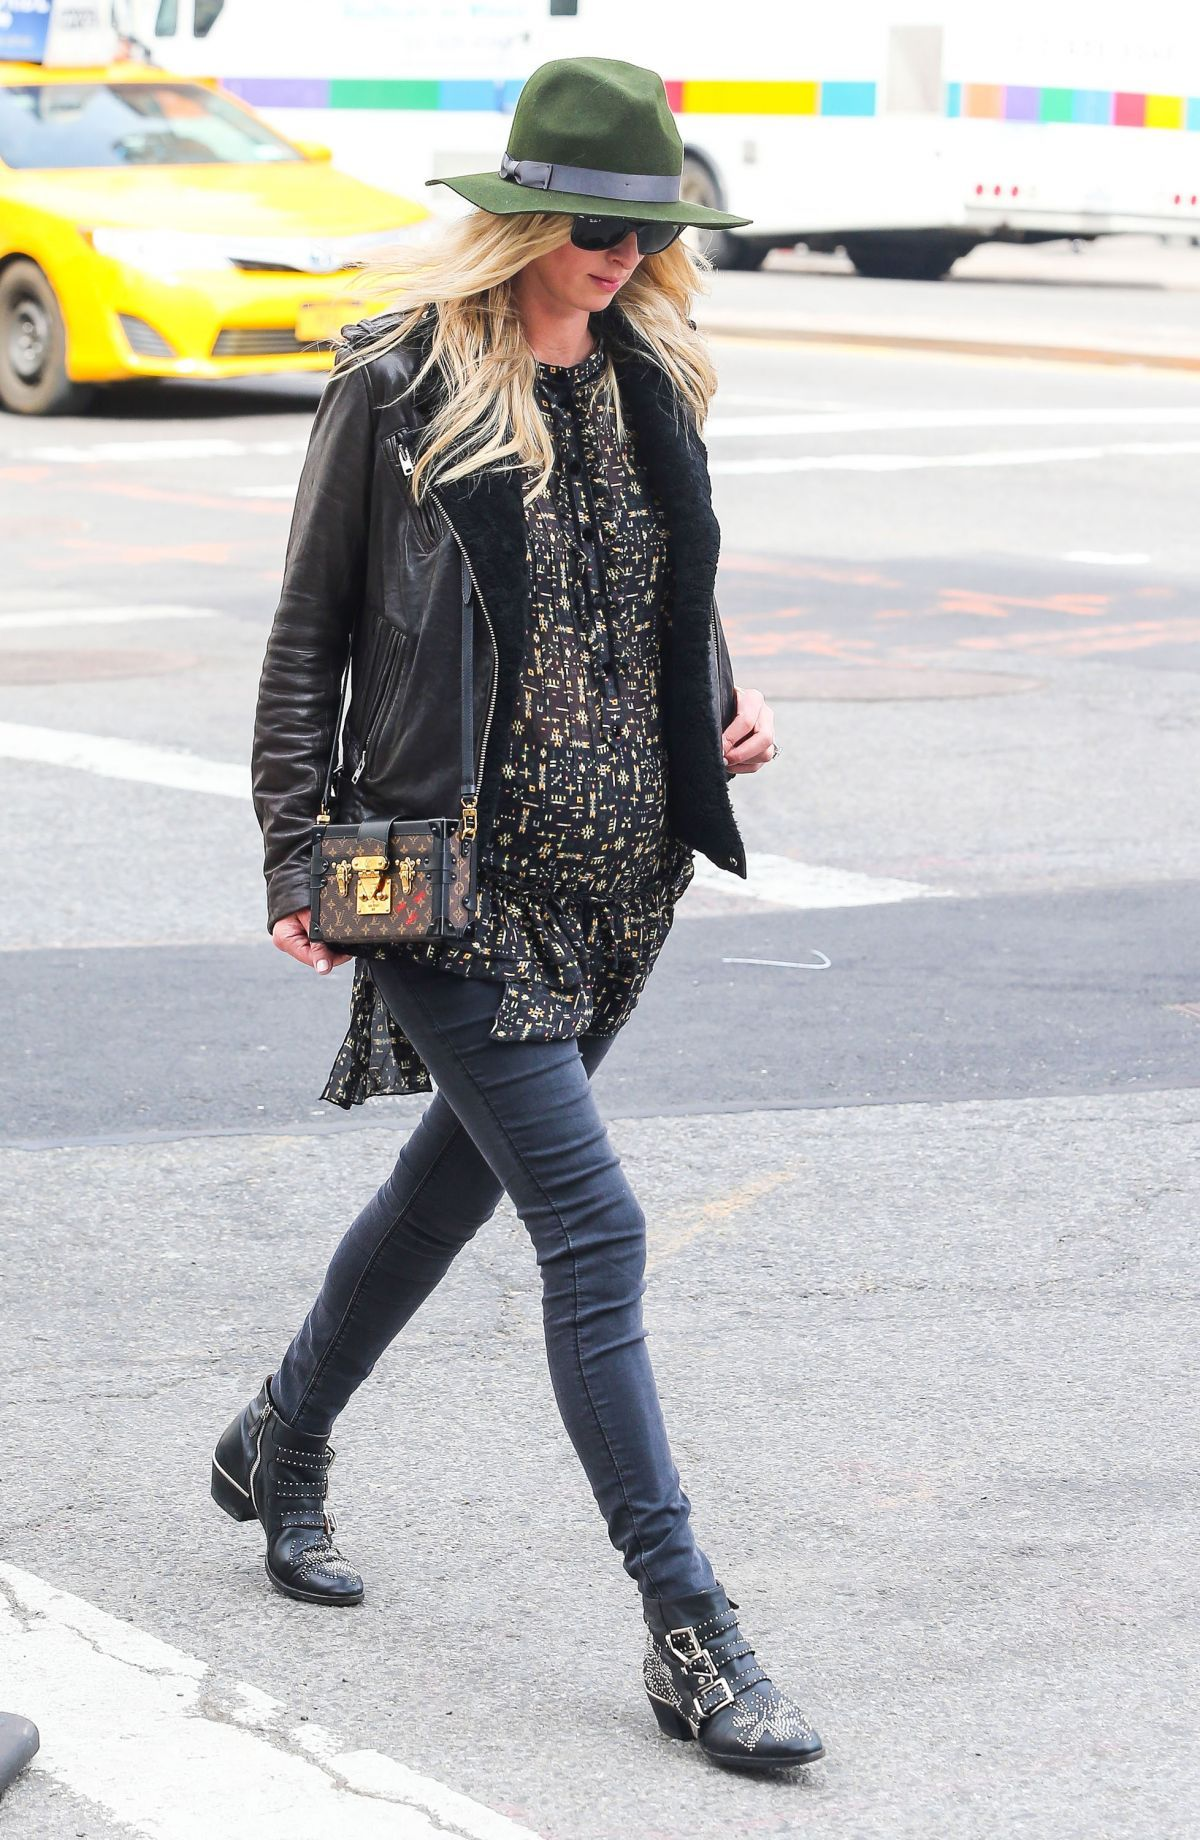 nicky-hilton-out-and-about-in-new-york-03-31-2016_8.jpg (1200×1840)